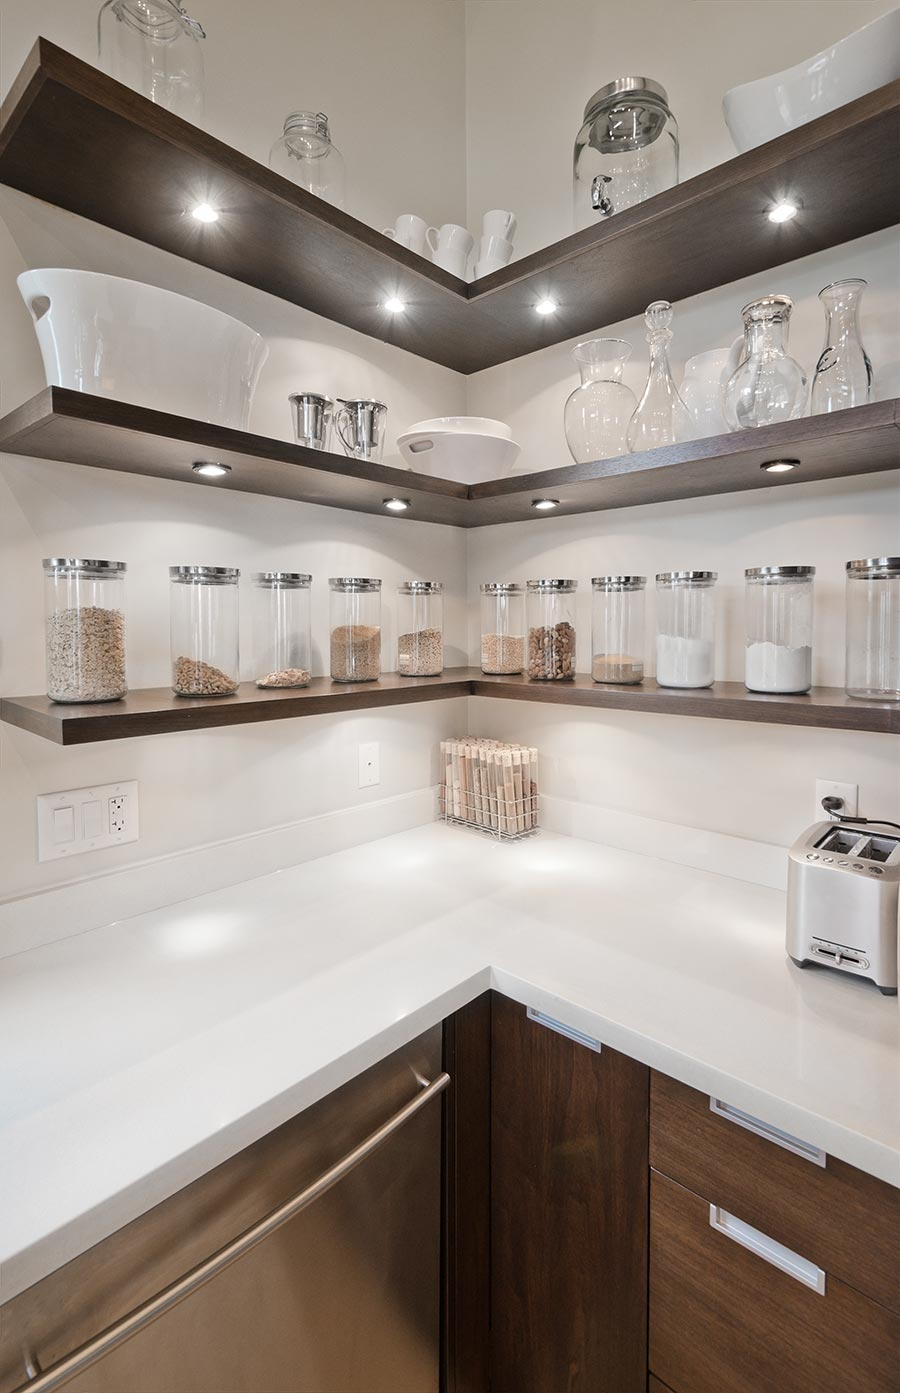 Mini recessed led accent light 10 watt equivalent cool white mini recessed led accent light 1 watt cool white shown installed on kitchen shelves in cool white aloadofball Gallery